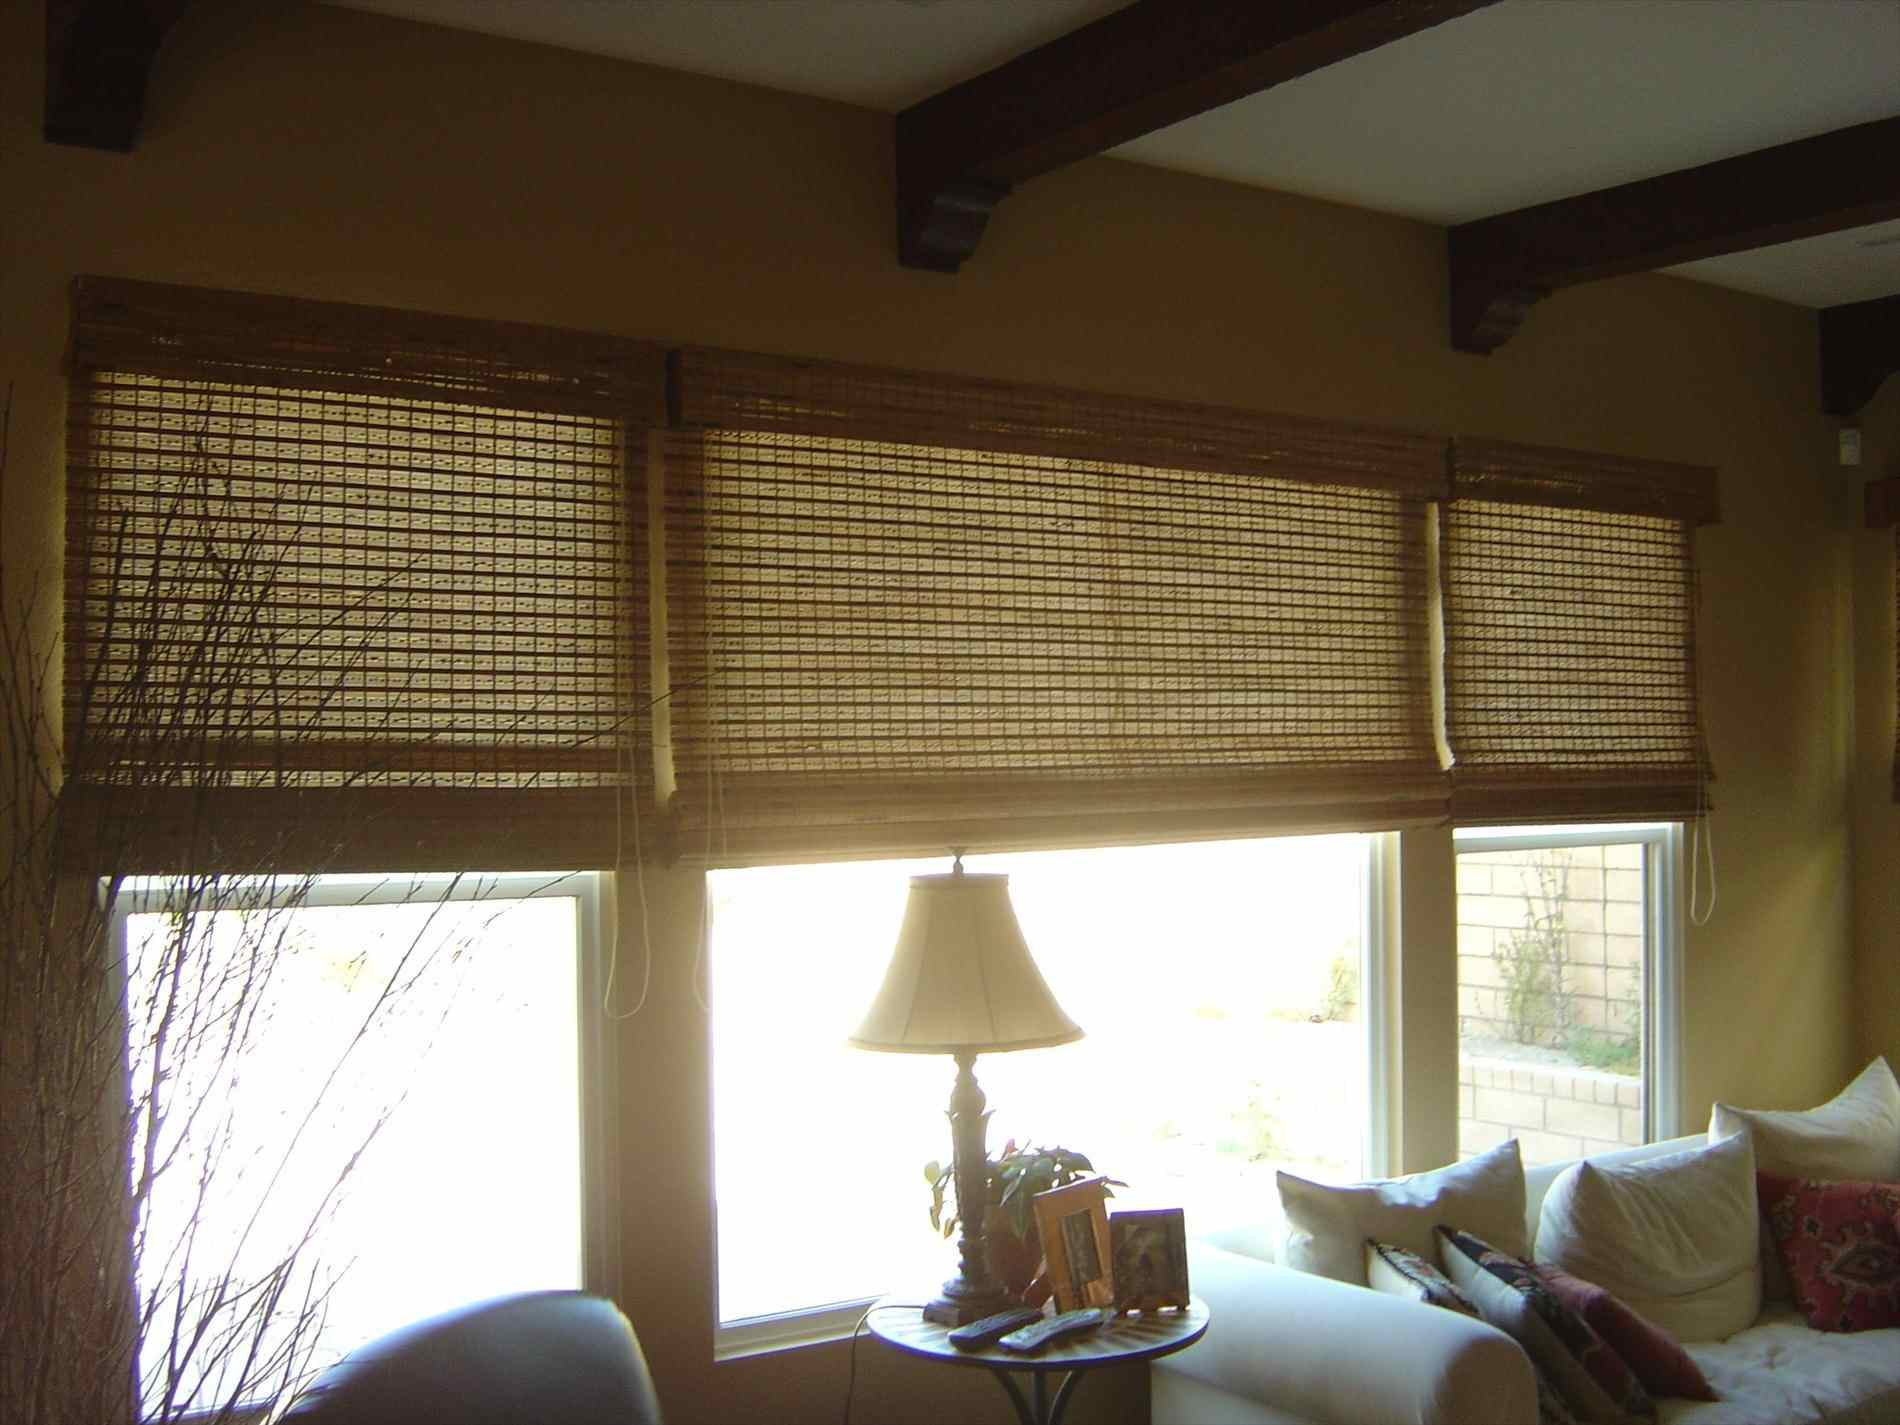 Lowes Shades | Patio Shades Lowes | Window Roller Shades Lowes